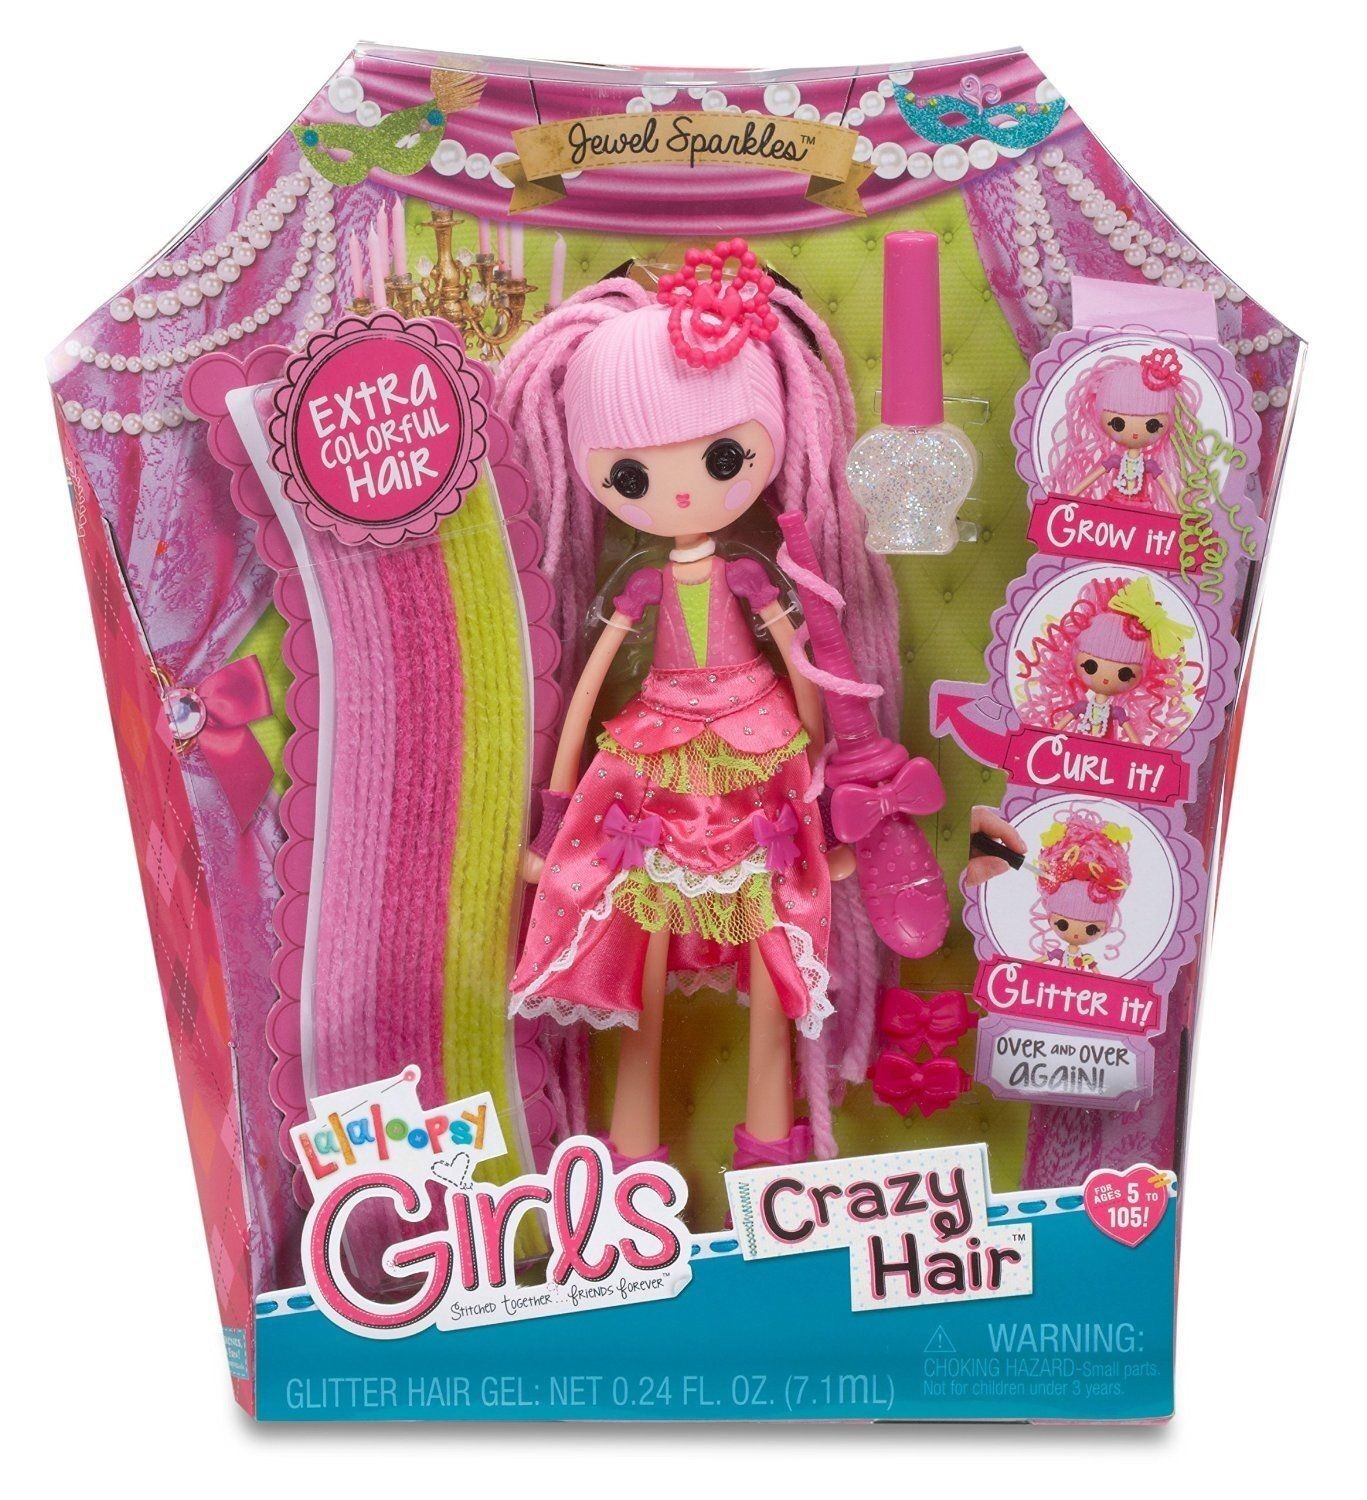 LALALOOPSY GIRLS CRAZY HAIR JEWEL SPARKLES BRAND NEW